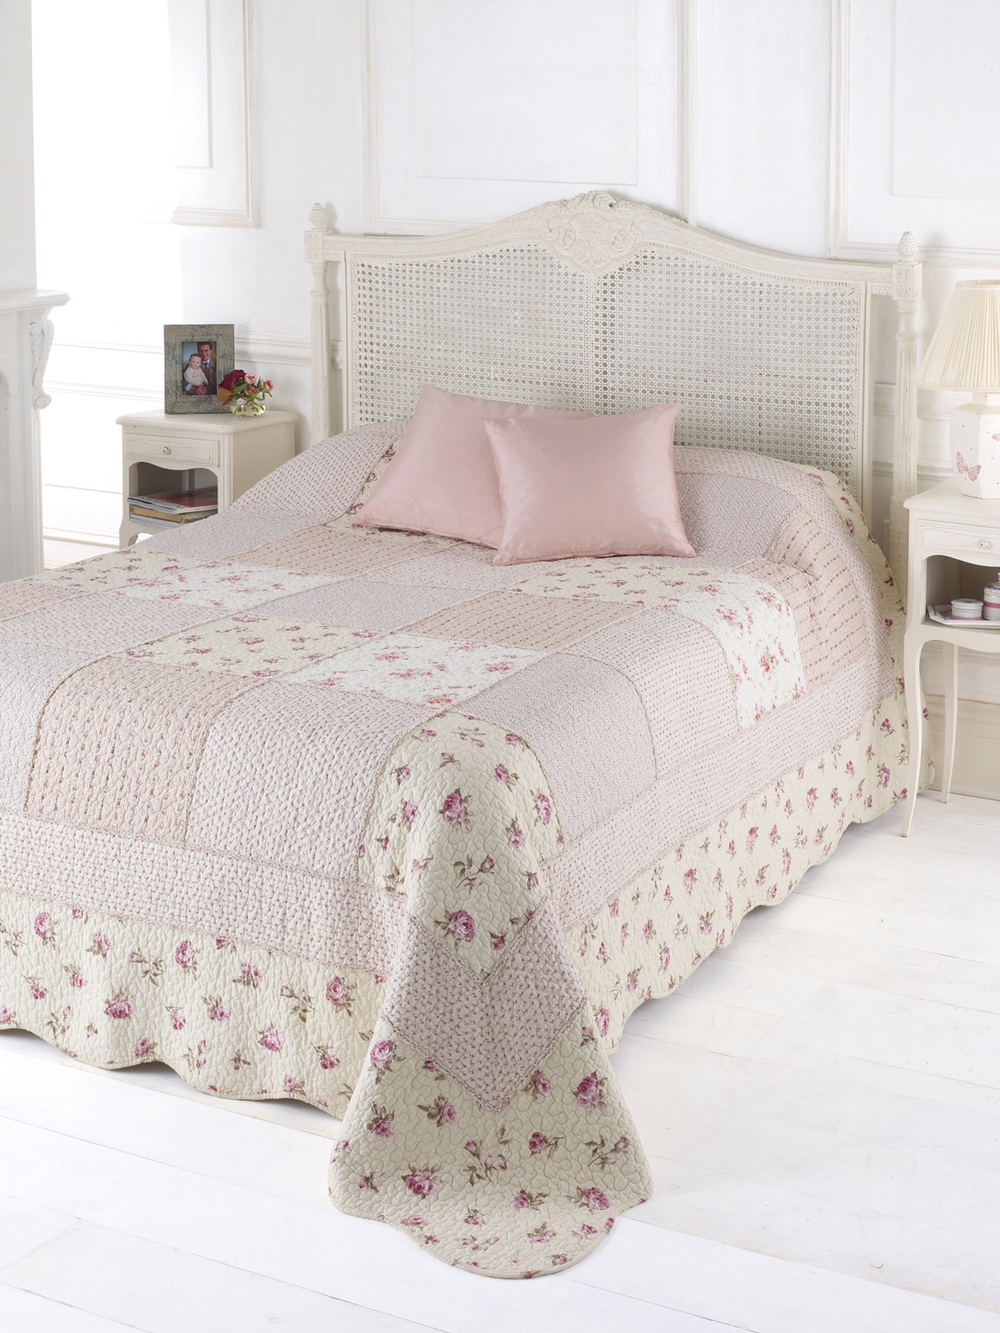 'Molly ' Quilt   Available in 2 sizes:  Single ( 190 x 260 cm )  € 85 Product Code: WAL-MOLQS Double ( 240 x 260 cm )  € 115 Product Code: WAL-MOLQD